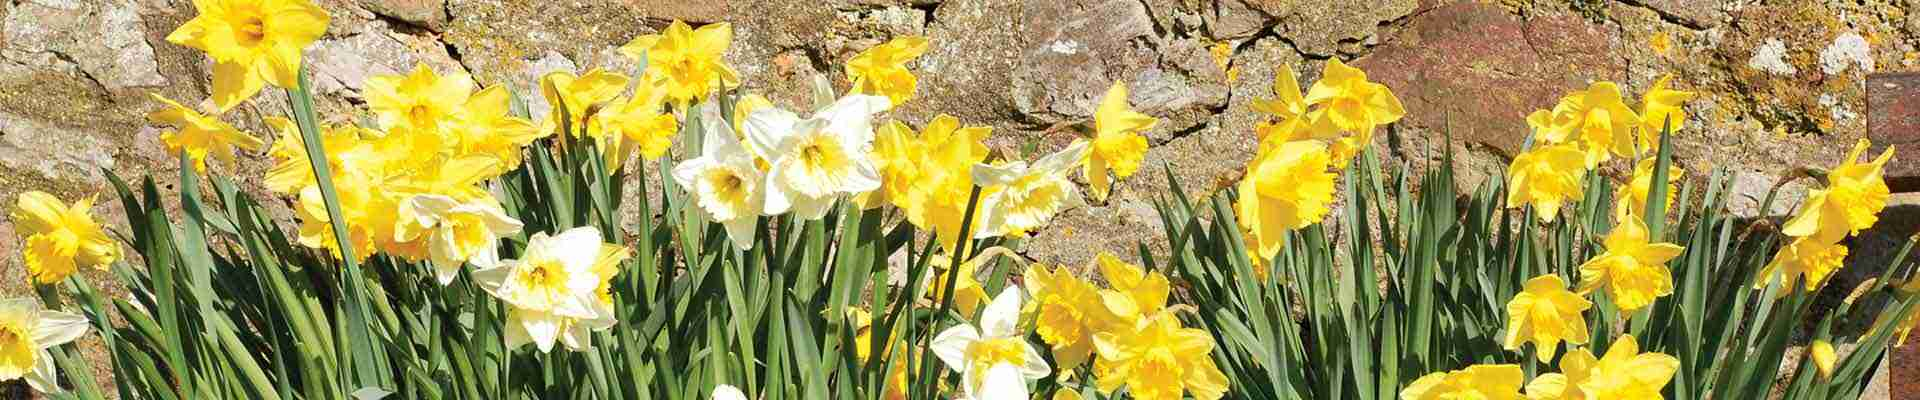 St Davids Day is a day National of celebration in Wales